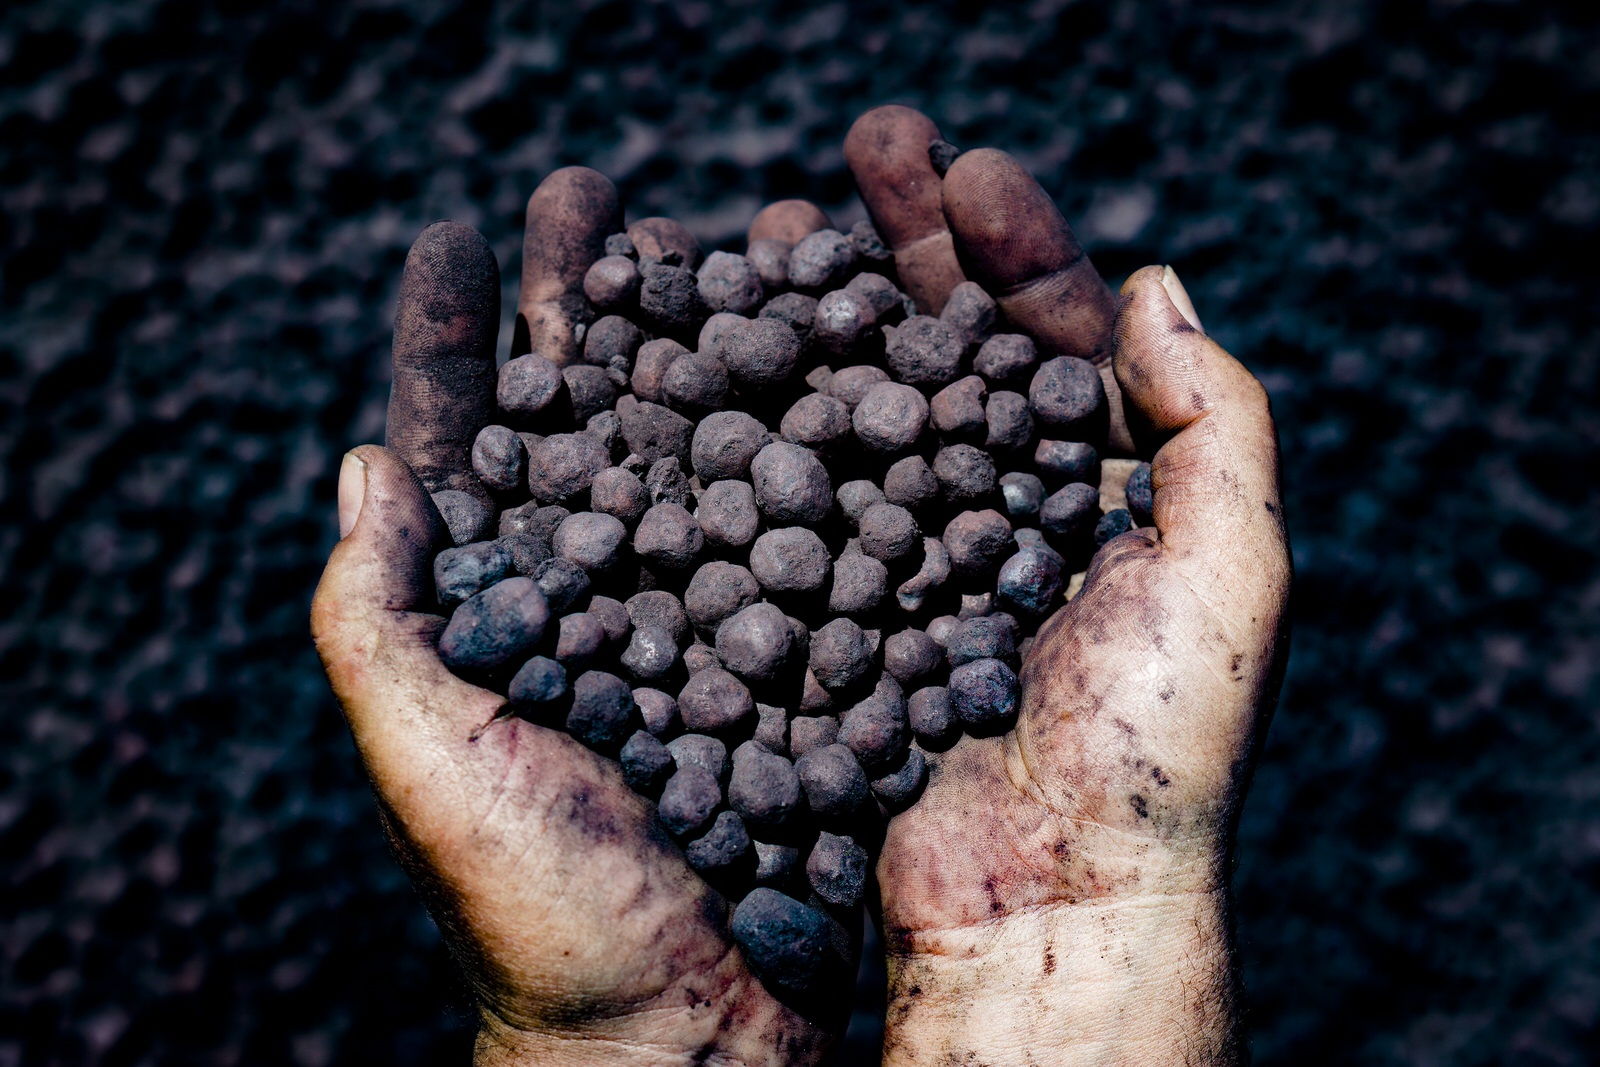 Professional Tax Software >> Iron ore: Bullish 1H, hands in the air for 2H | Bloomberg Professional Services